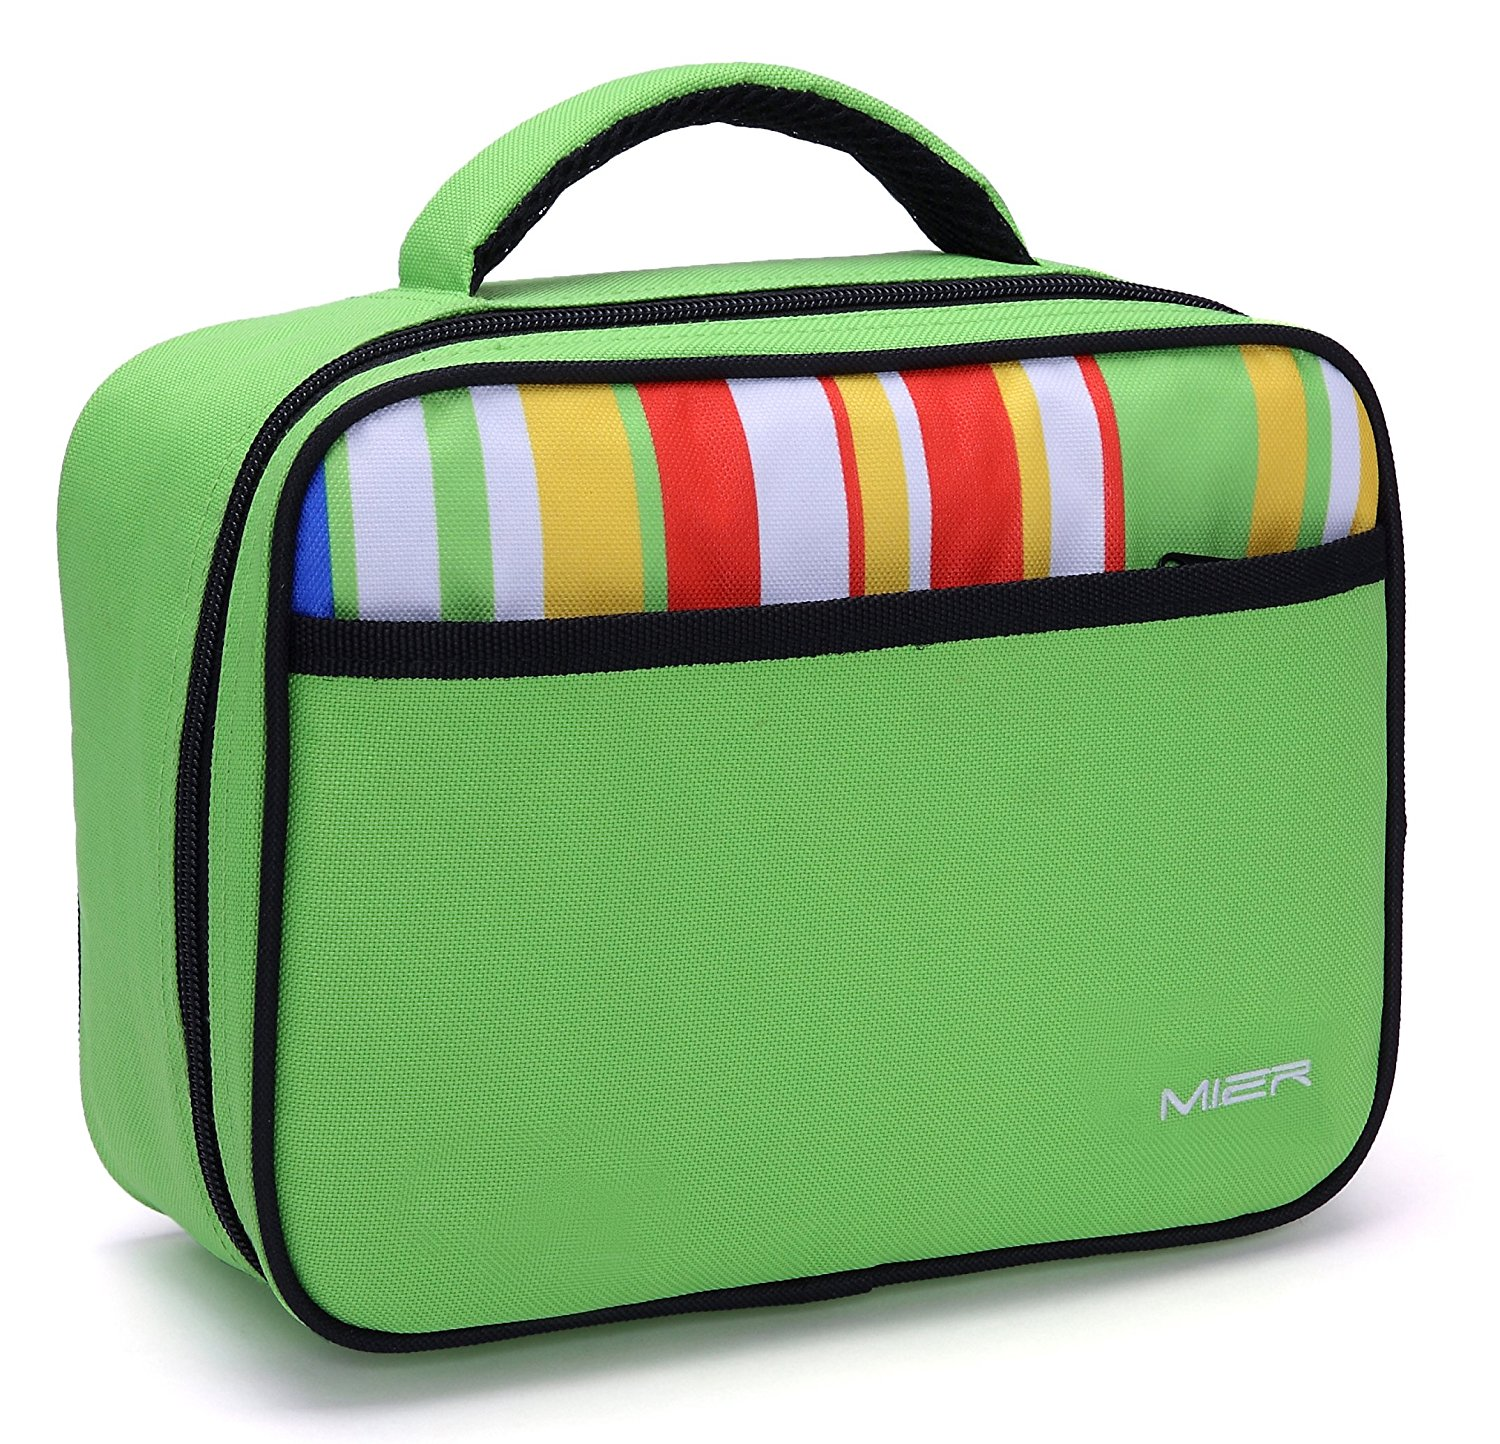 MIER Kids Lunch Box